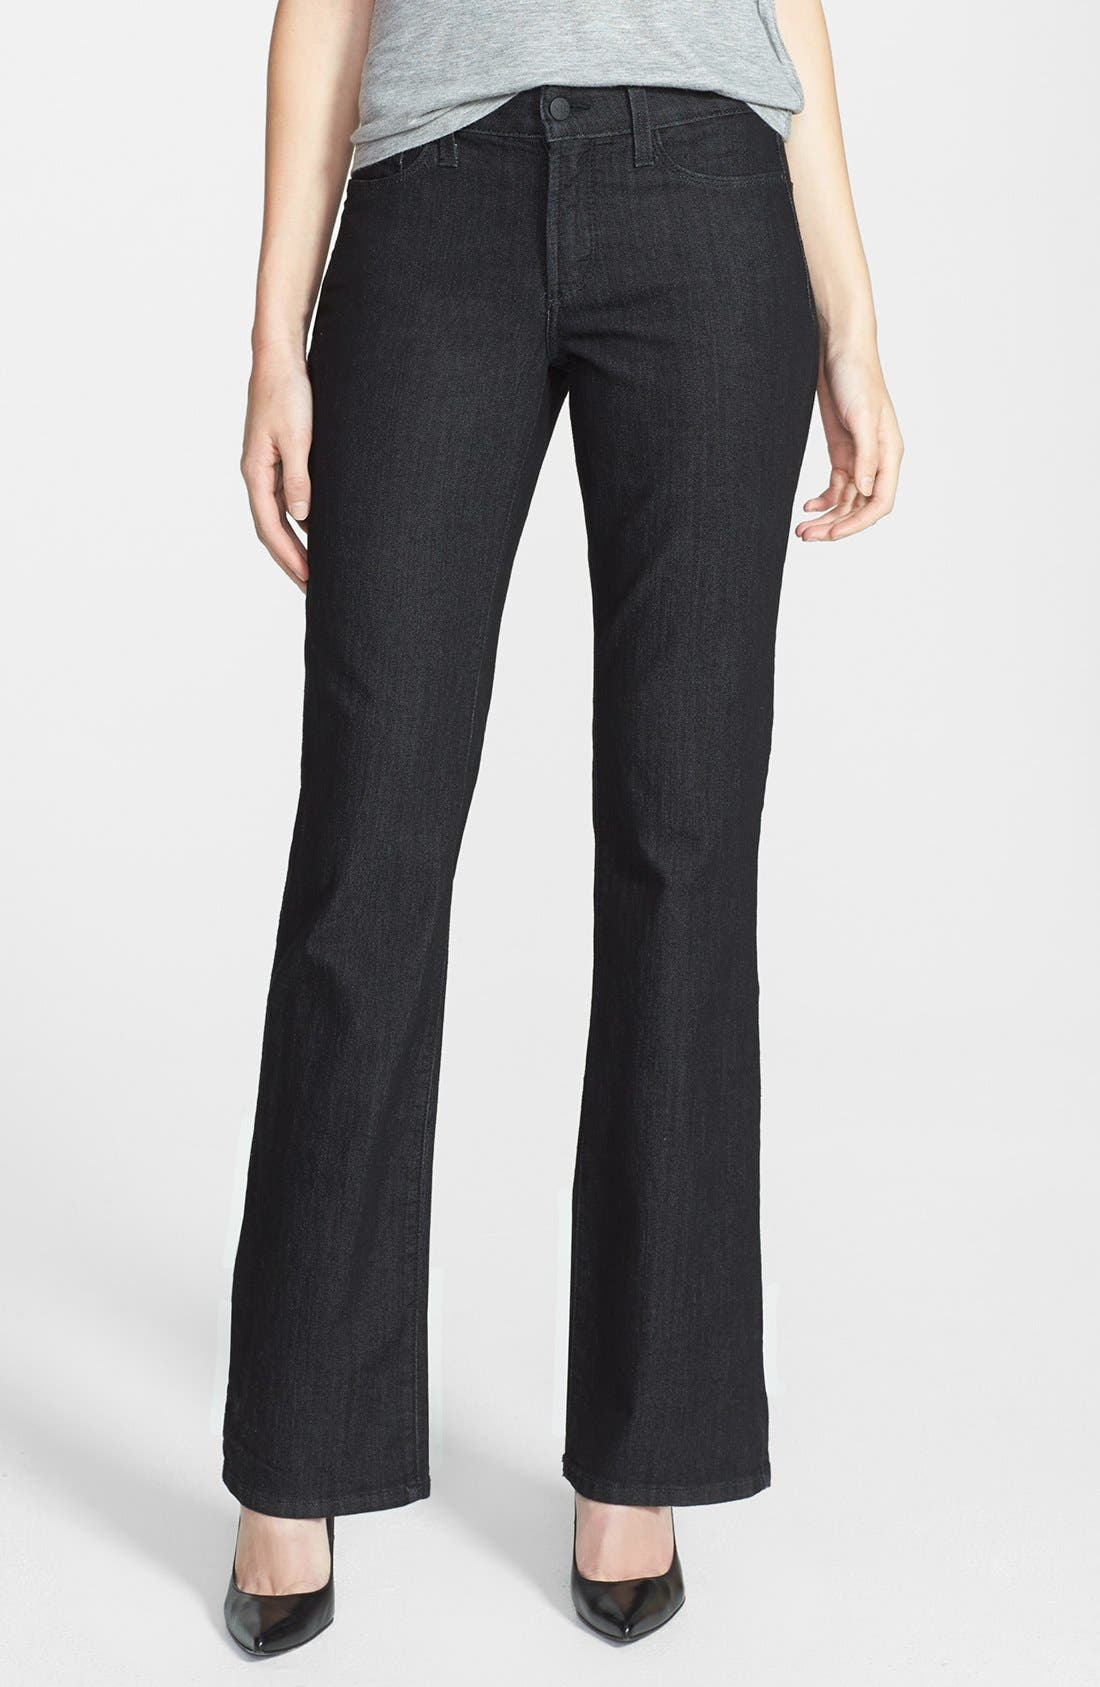 Alternate Image 1 Selected - NYDJ 'Barbara' Stretch Bootcut Jeans (Dark Enzyme)